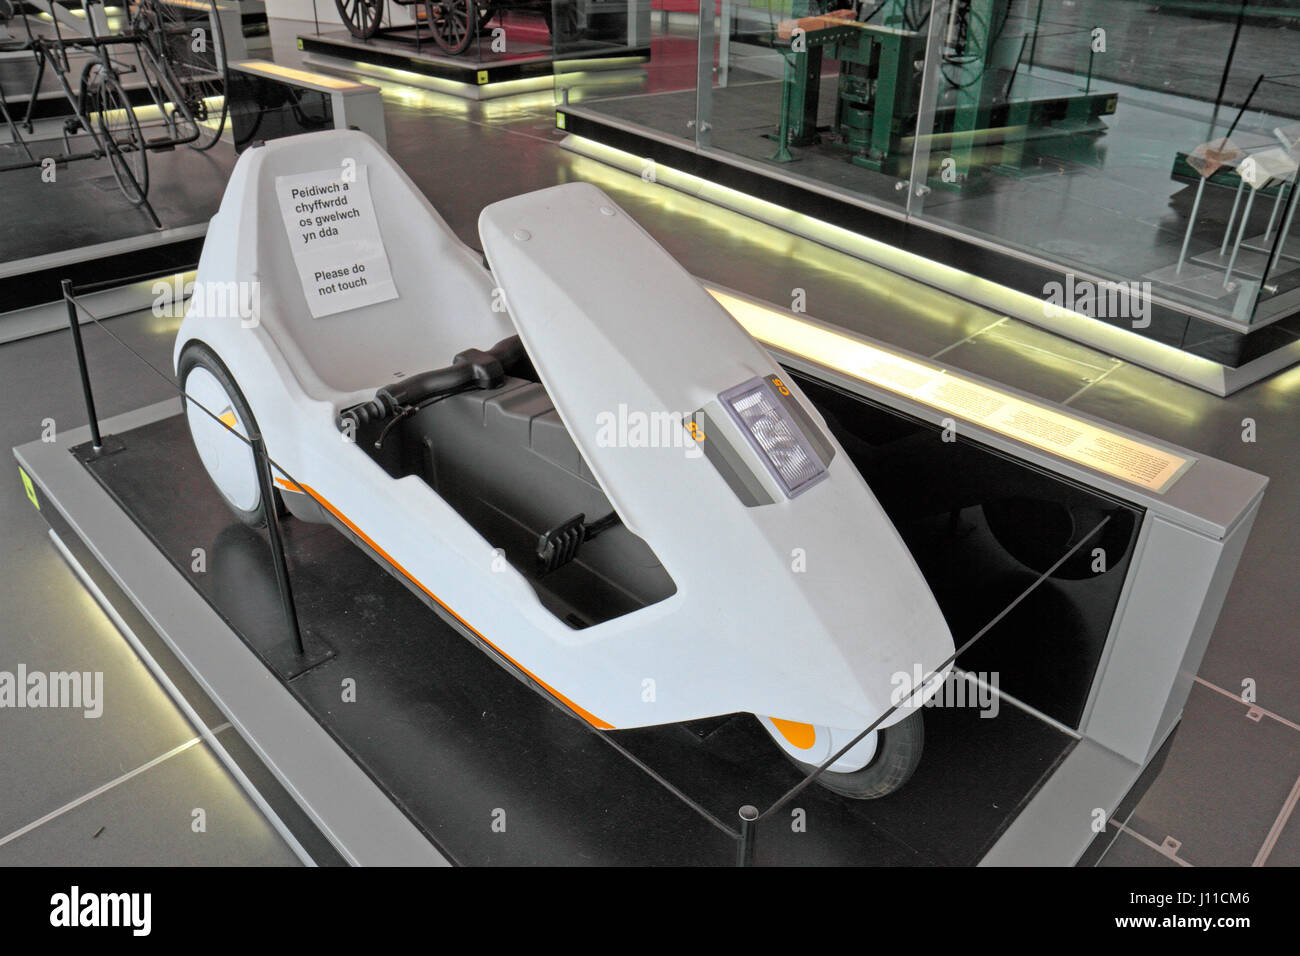 A Sinclair C5 on display in the National Waterfront Museum, Swansea, Wales. - Stock Image